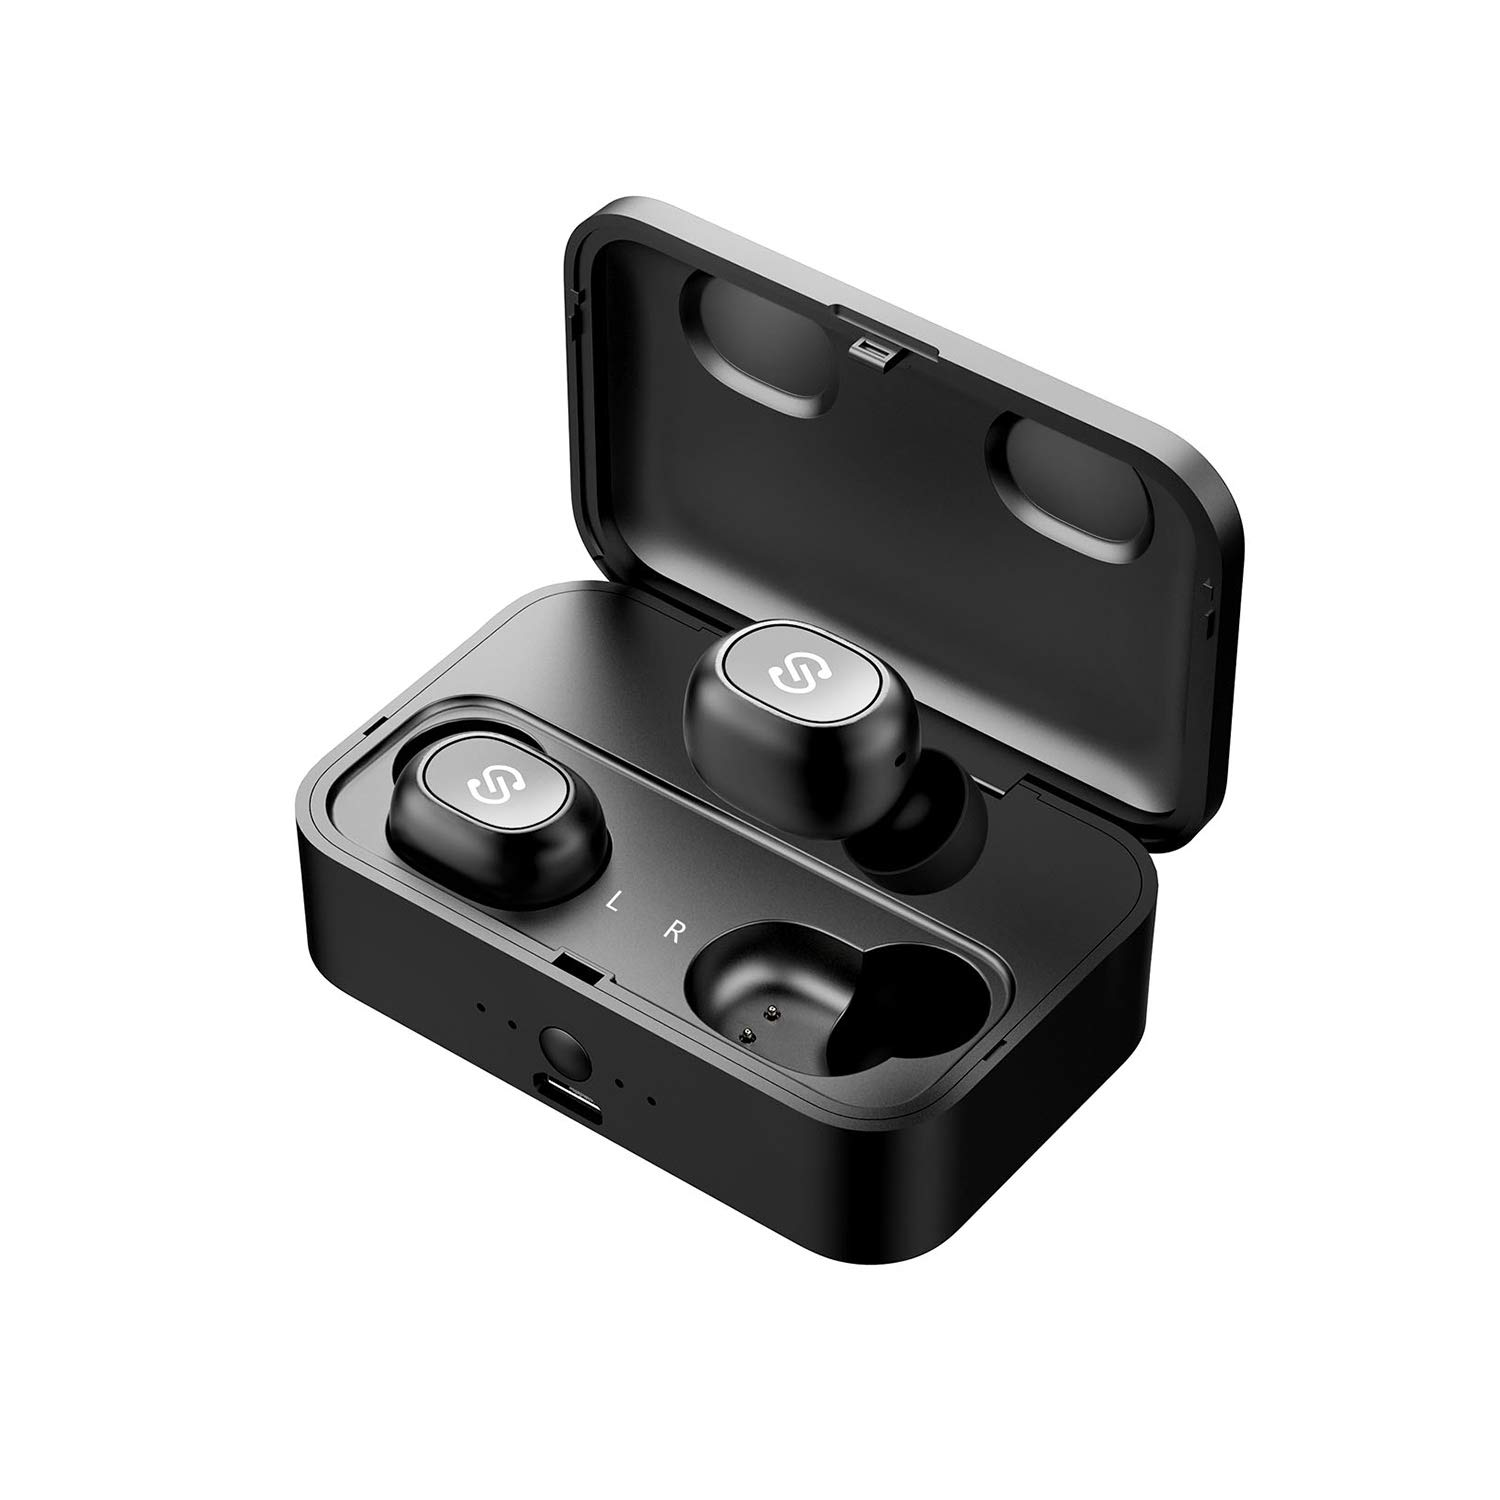 SoundPEATS True Wireless Bluetooth Earbuds in-Ear Stereo TWS Bluetooth Headphones Wireless Earphones (Bluetooth 5.0, 2600mAh Charging Case, 55 Hours Playtime, Built-in Mic) by SoundPEATS (Image #2)